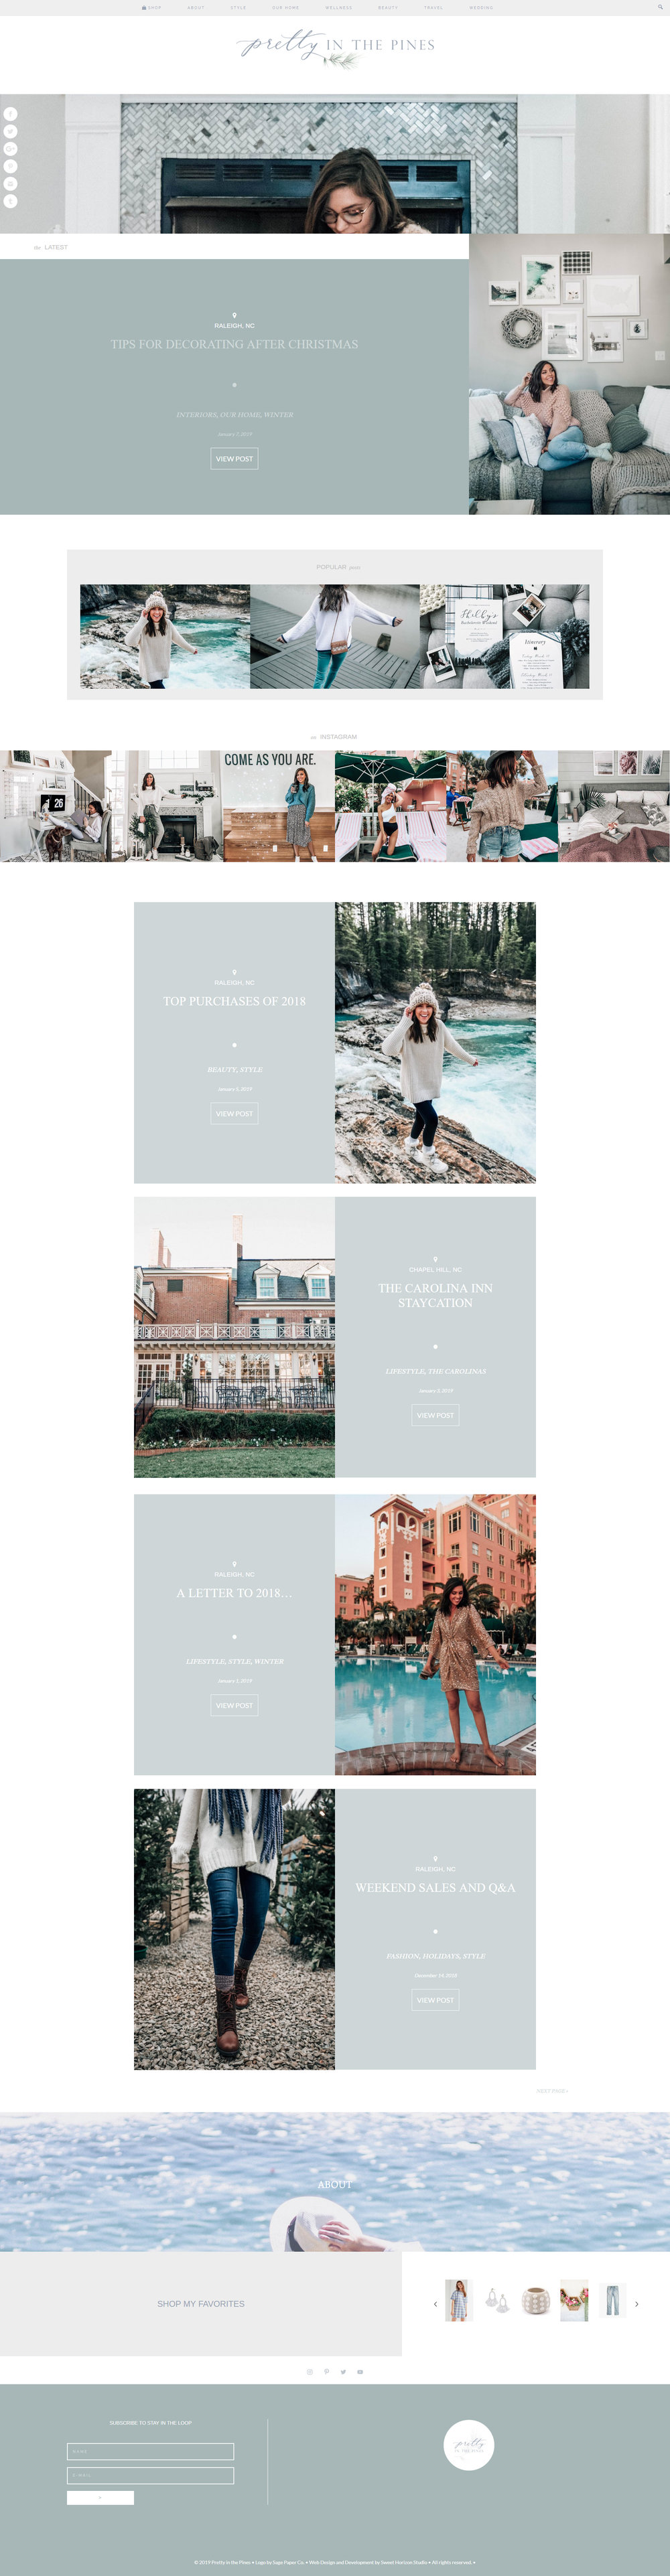 Catryn Painter | Pretty In The Pines Home Page Design | Sweet Horizon Studio | Creative Lady Directory